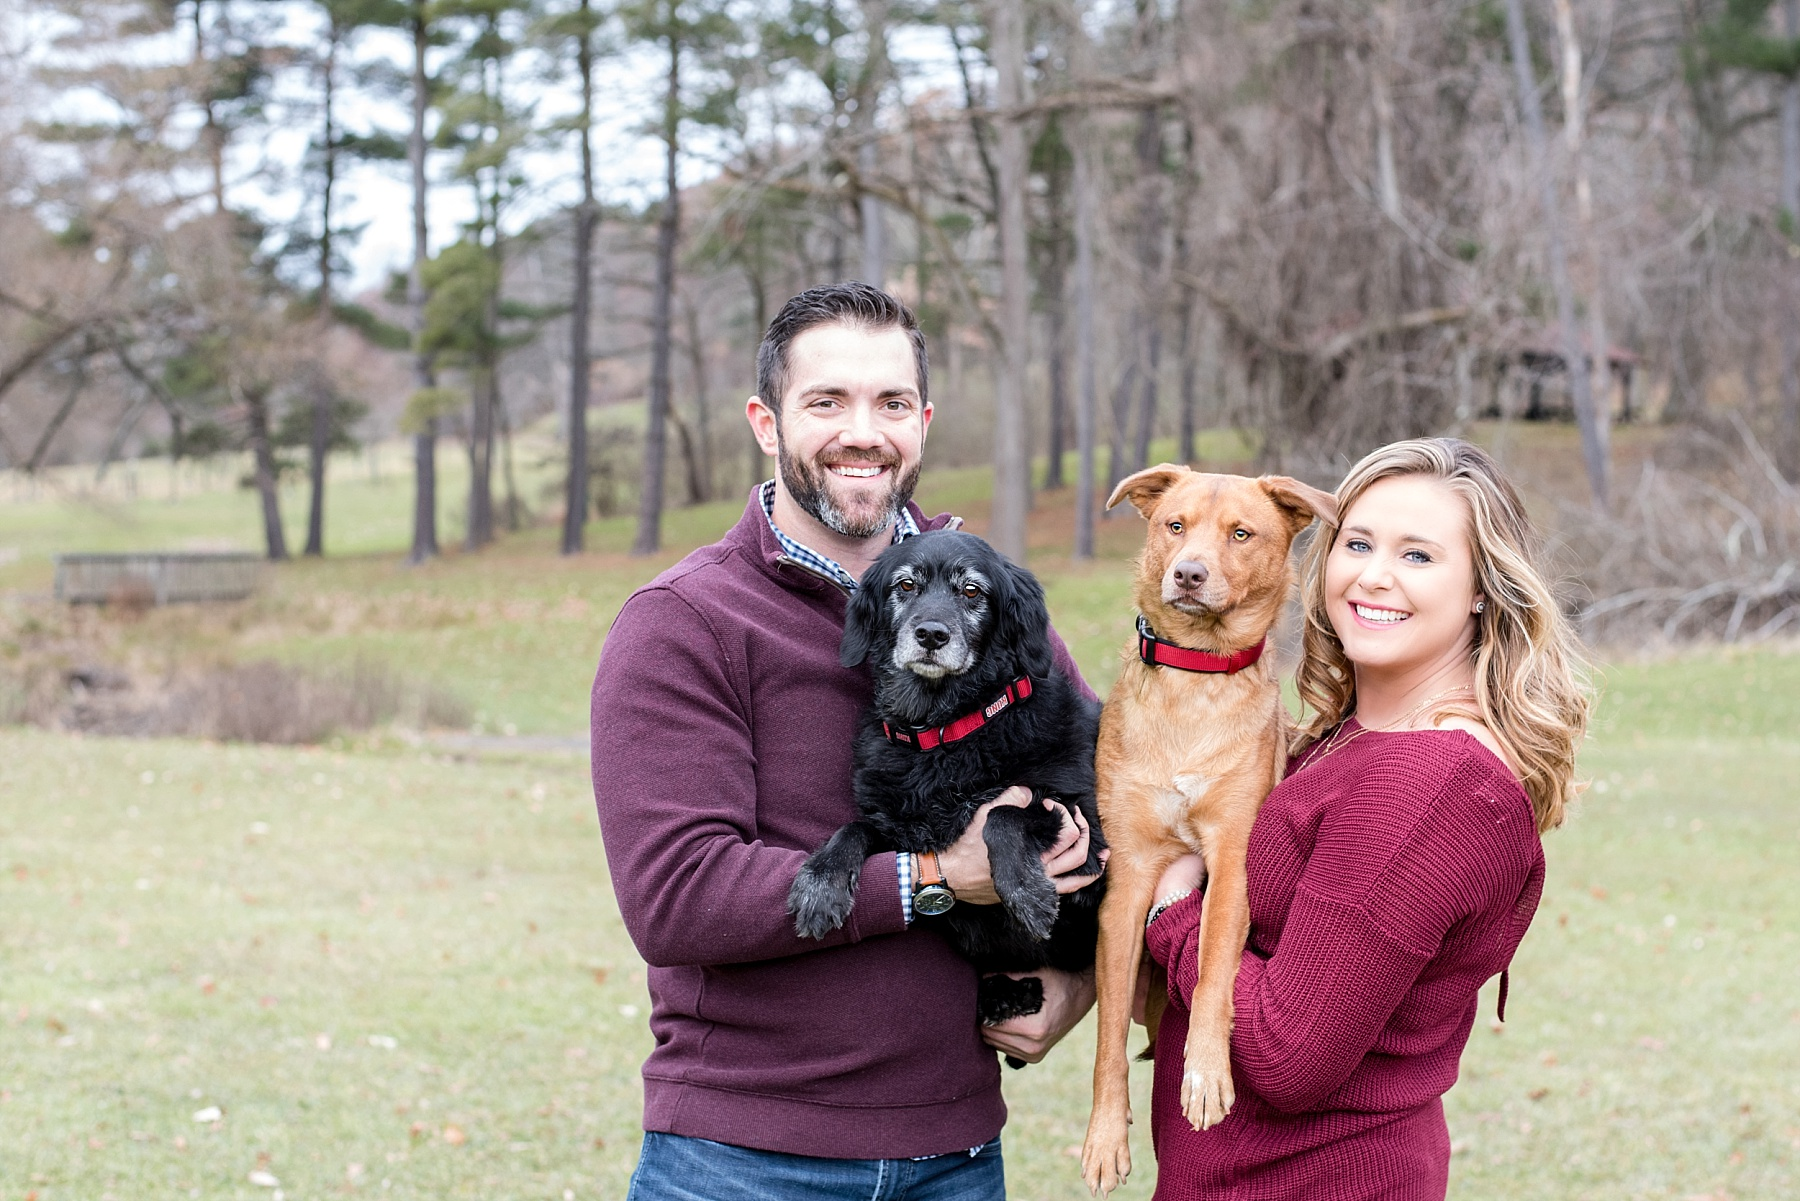 couple with two dogs at North Park in Gisbsonia